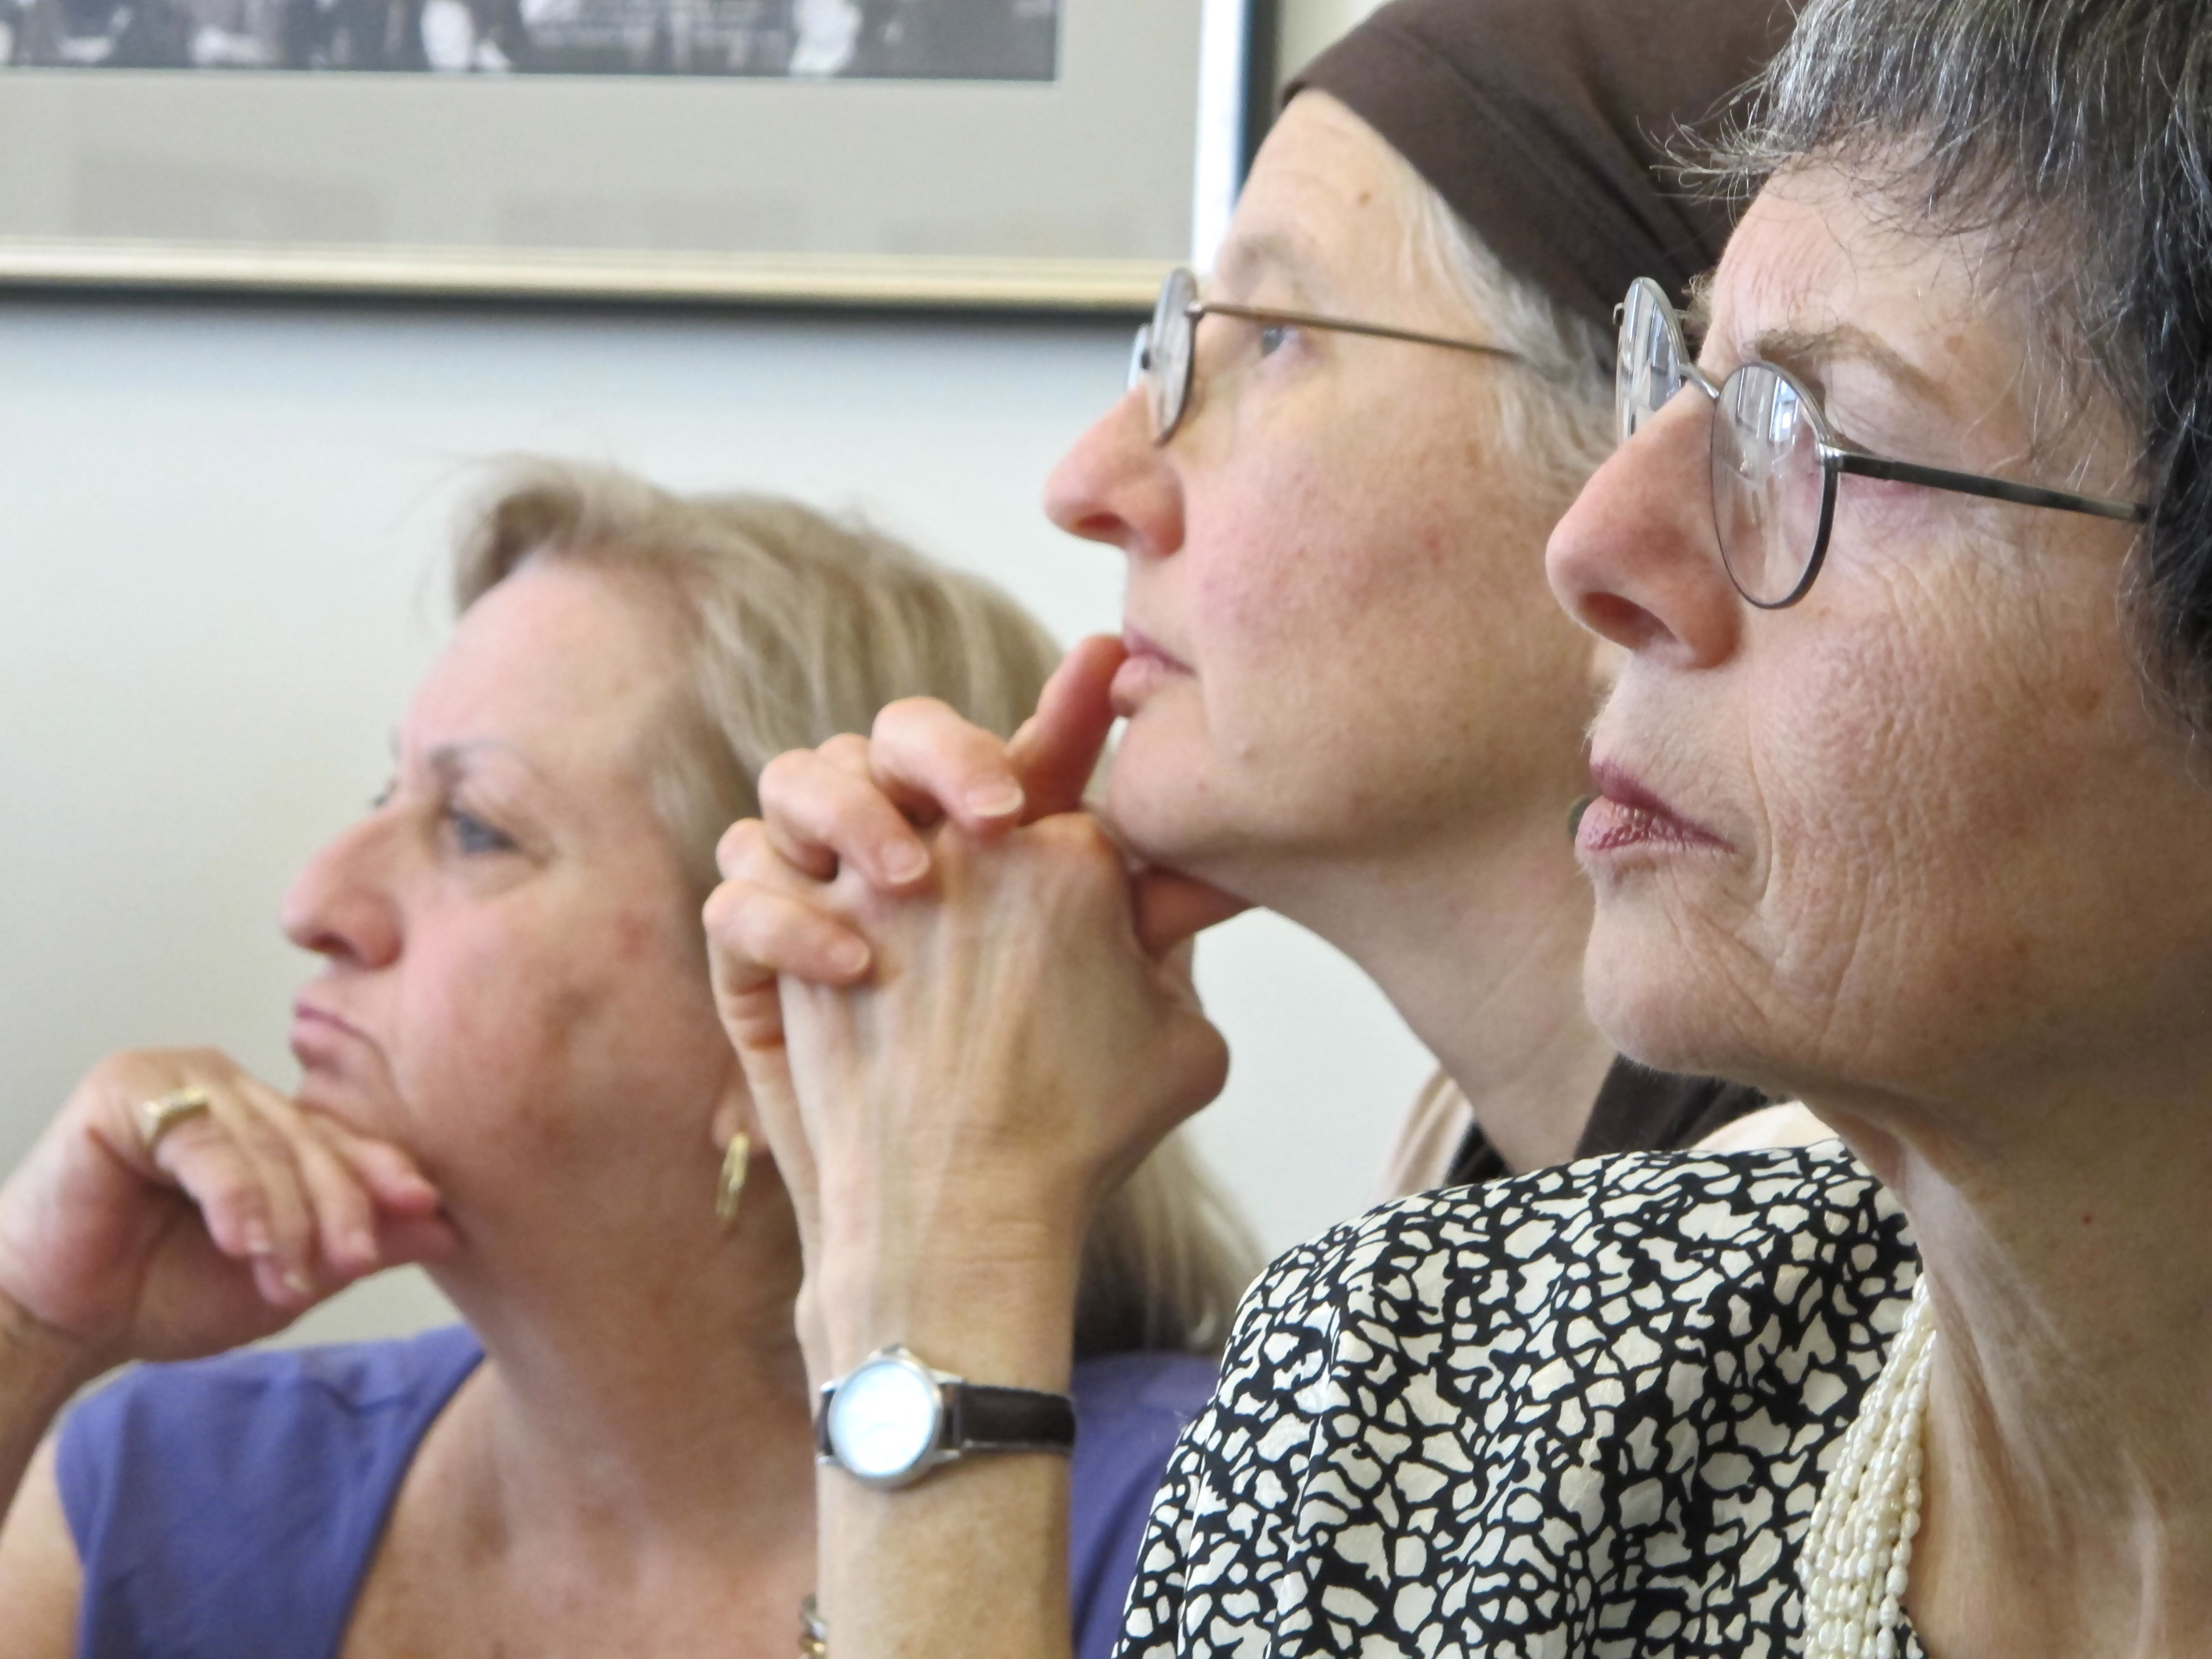 Three women lost in thought